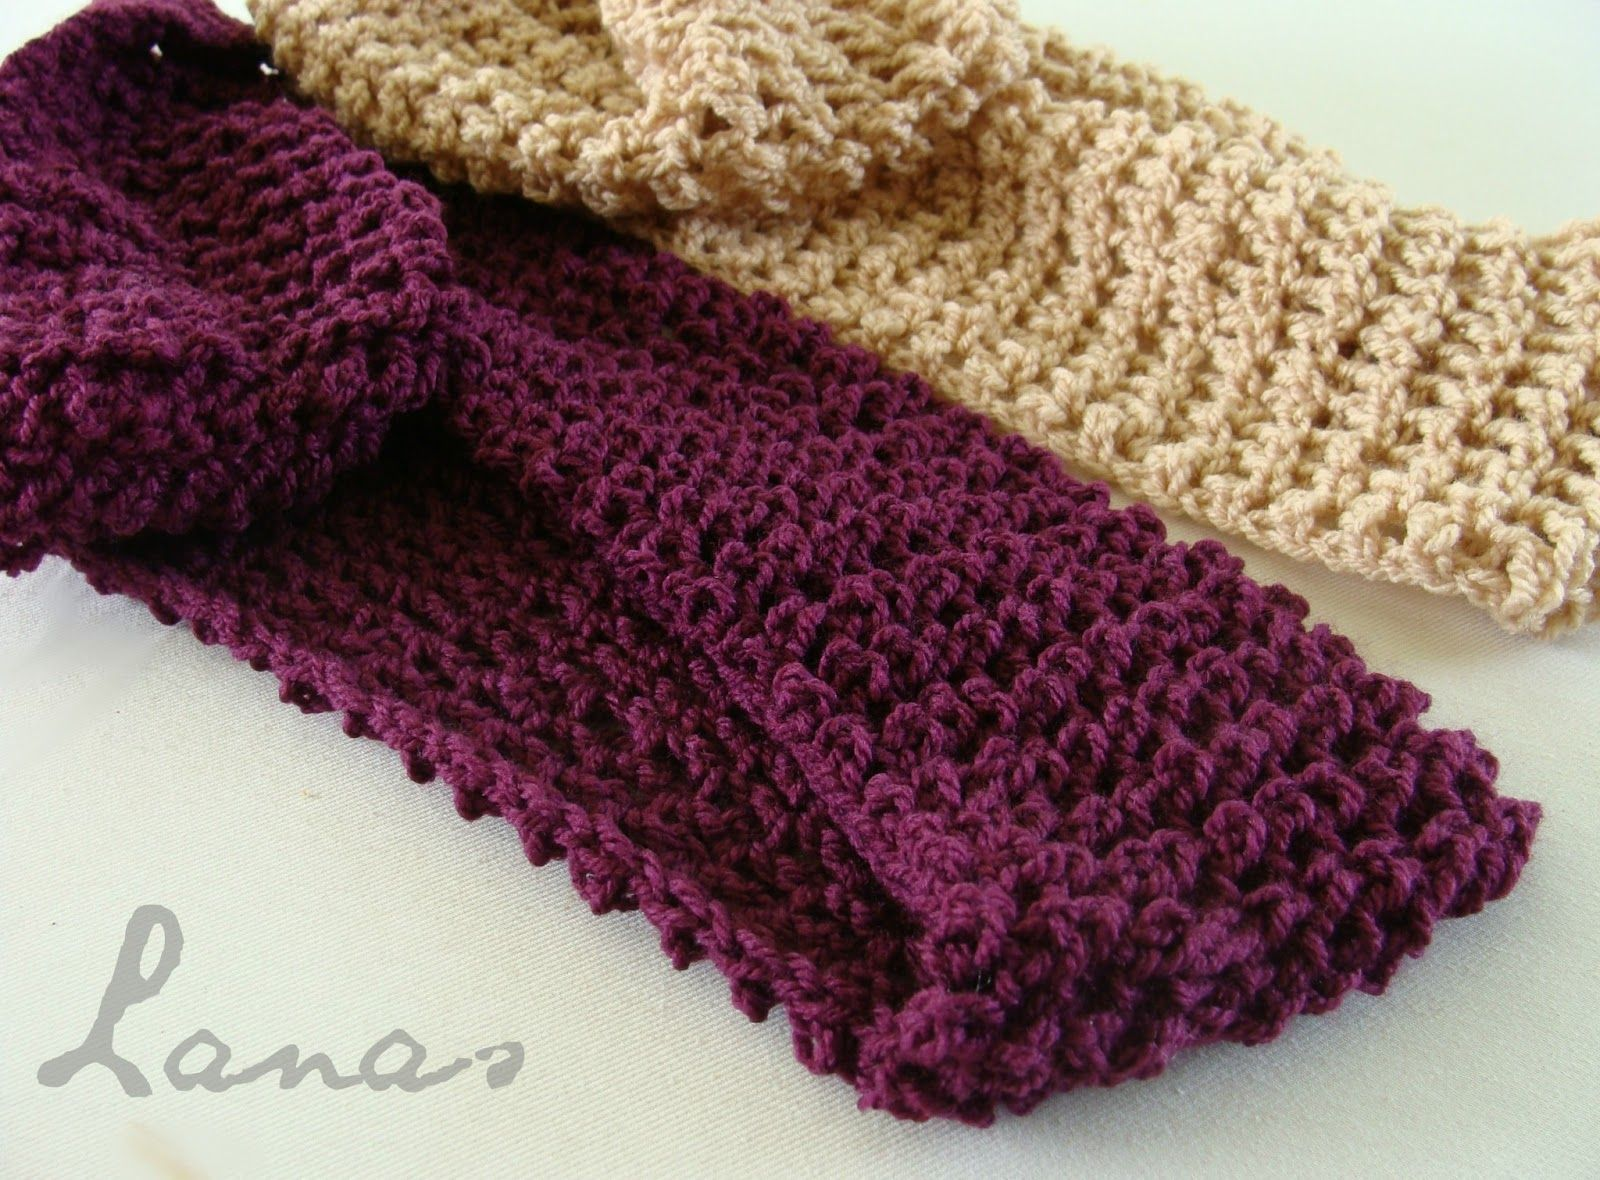 This scarf is made in crochet, but looks knitted. It uses